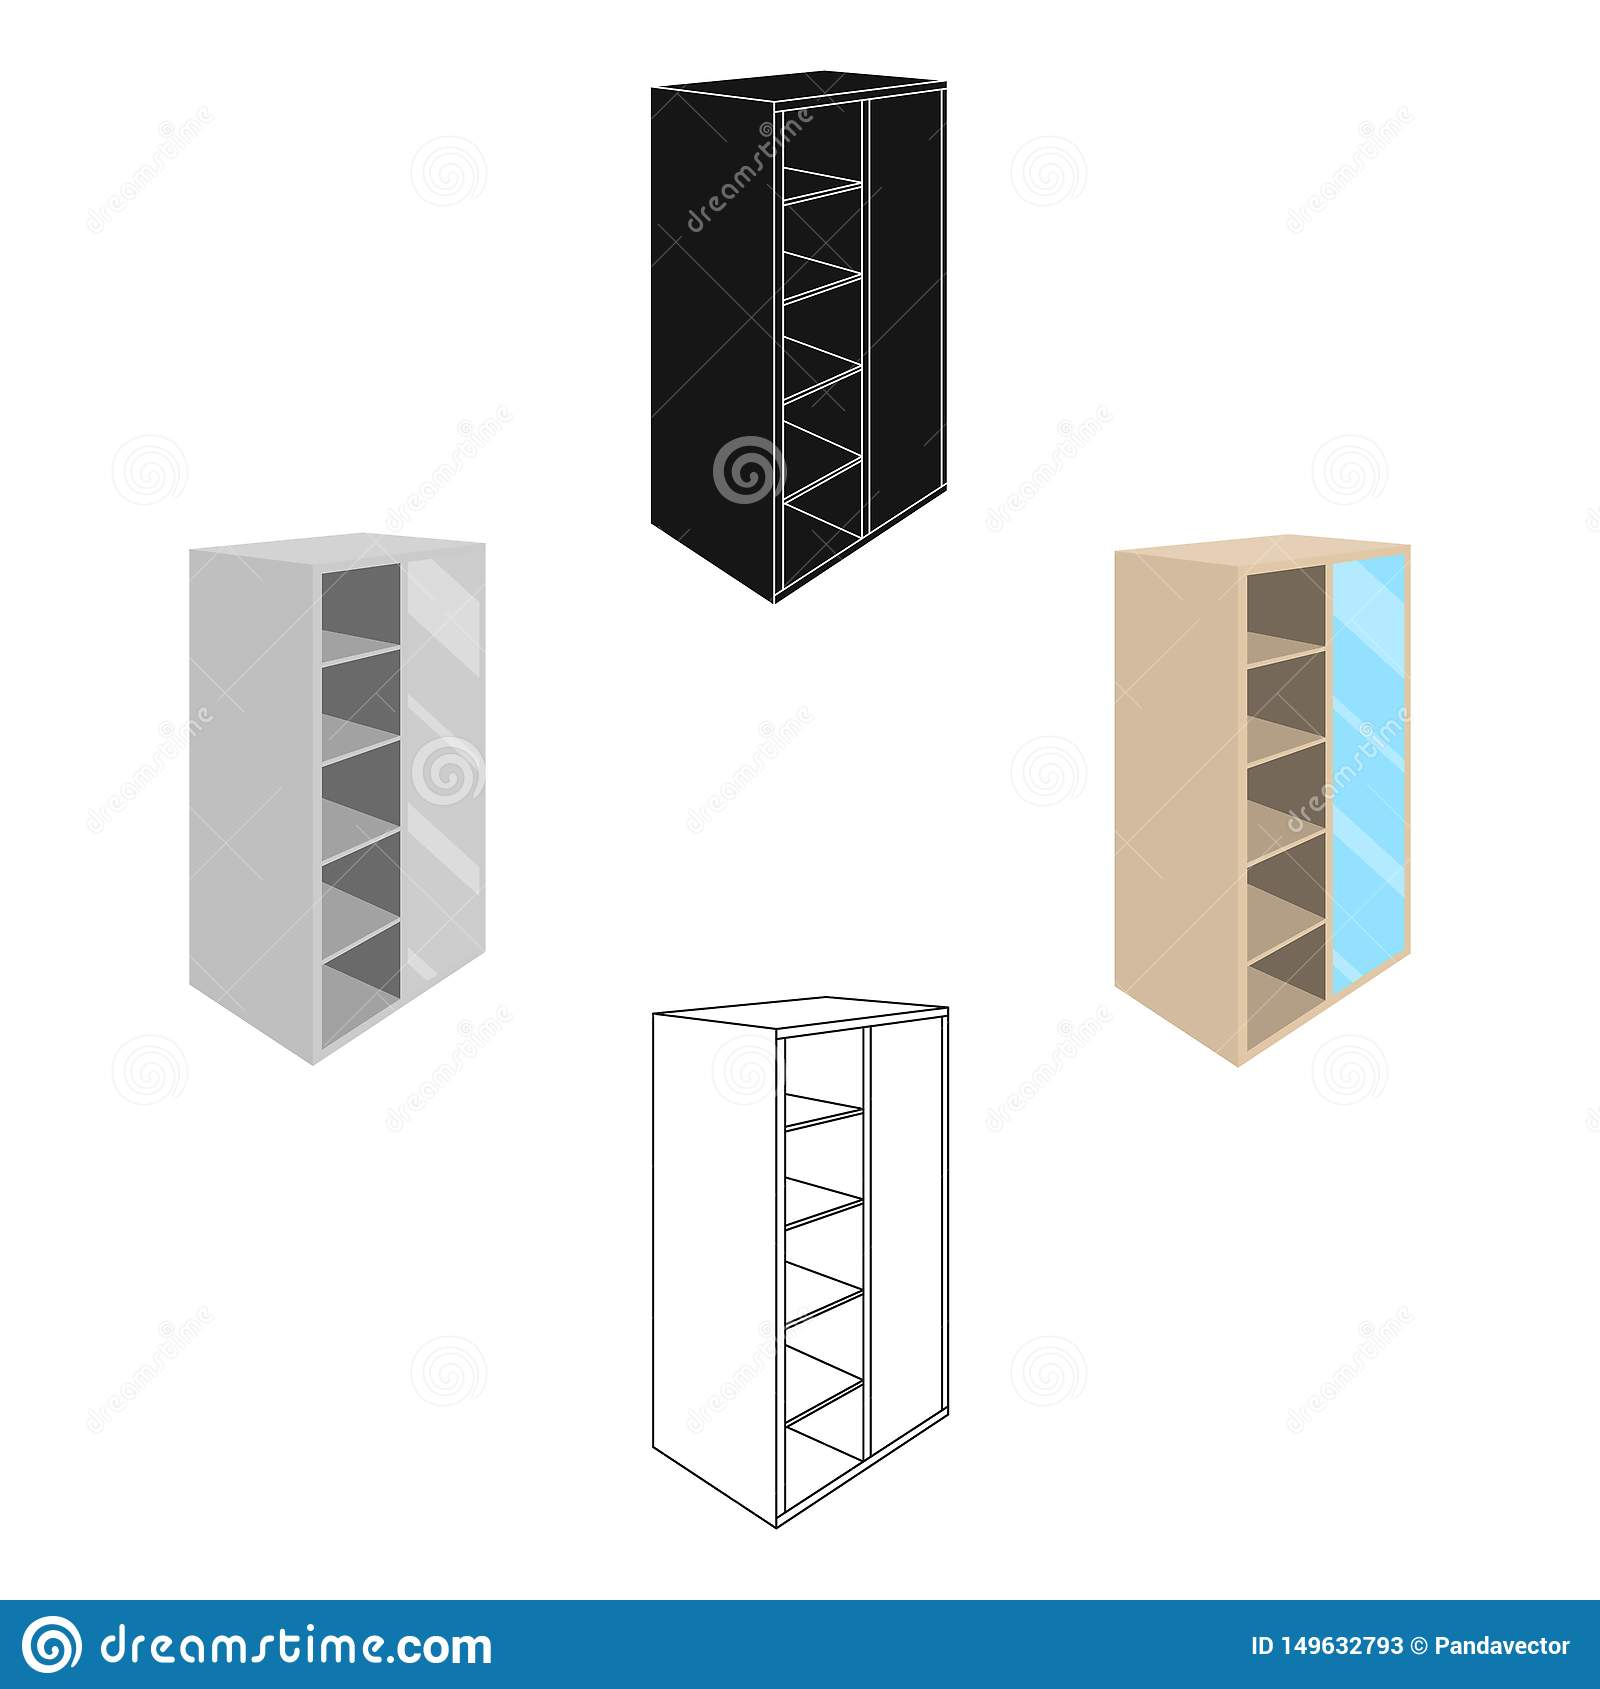 Picture of: Light Cabinet With Bins And Mirror Wardrobe For Women S Clothing Bedroom Furniture Single Icon In Cartoon Black Style Stock Vector Illustration Of Shelf Interior 149632793